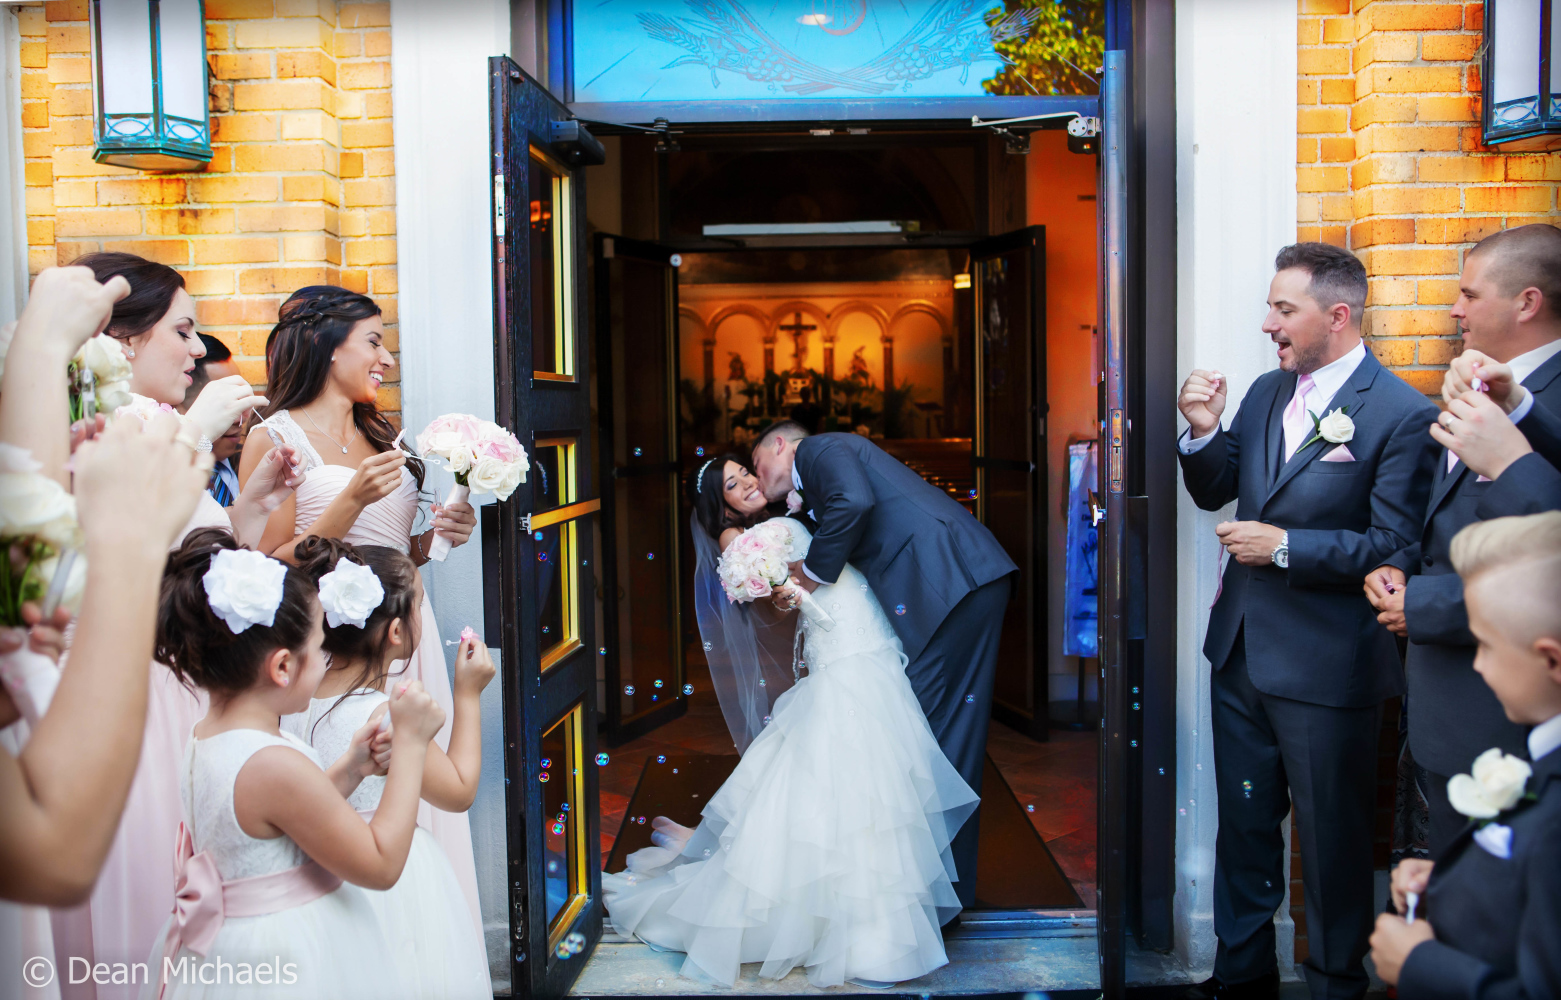 wedding-photographer-gallery-2-R2QPBL6P9165.jpg